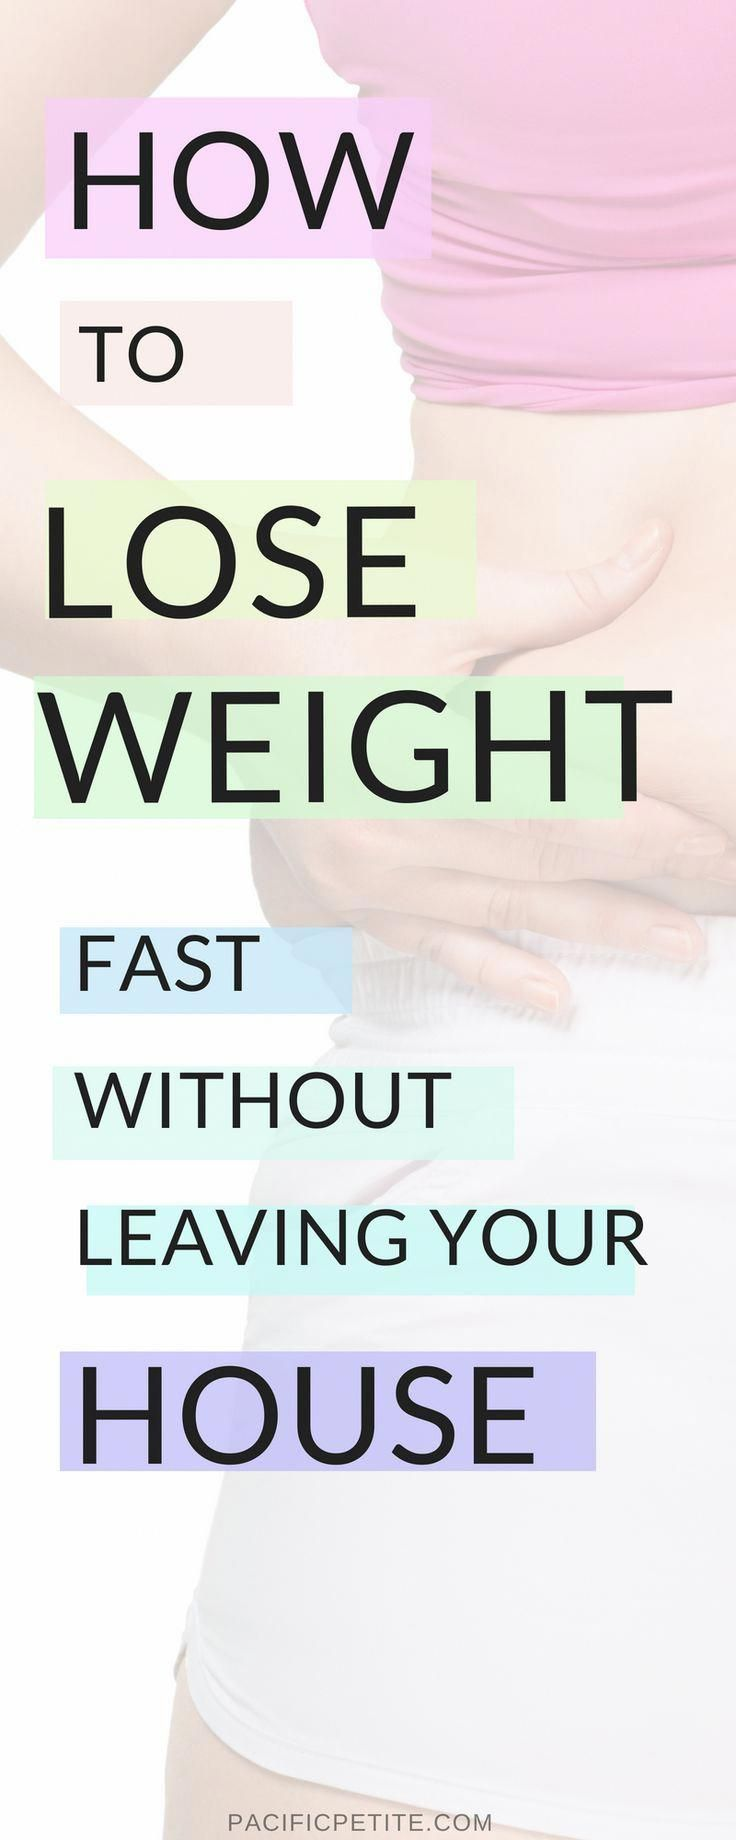 How to lose weight and how to lose belly fat when you are short on time and can't make it to the gym. When you have no motivation or not time to leave the house for a workout, you can lose weight right in the comfort of your home. This article outlines 5 workout routine by skill level and from different instructors of various backgrounds #workout #howtoloseweight #howtolosebellyfat #motivation #exercise